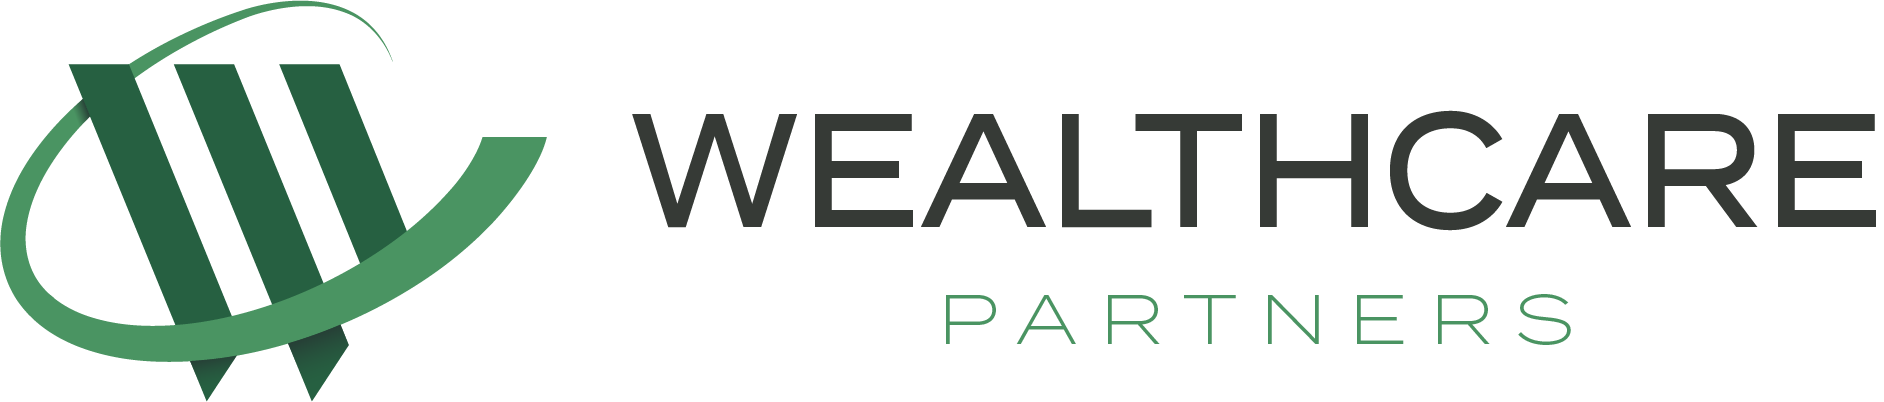 WealthCare Partners